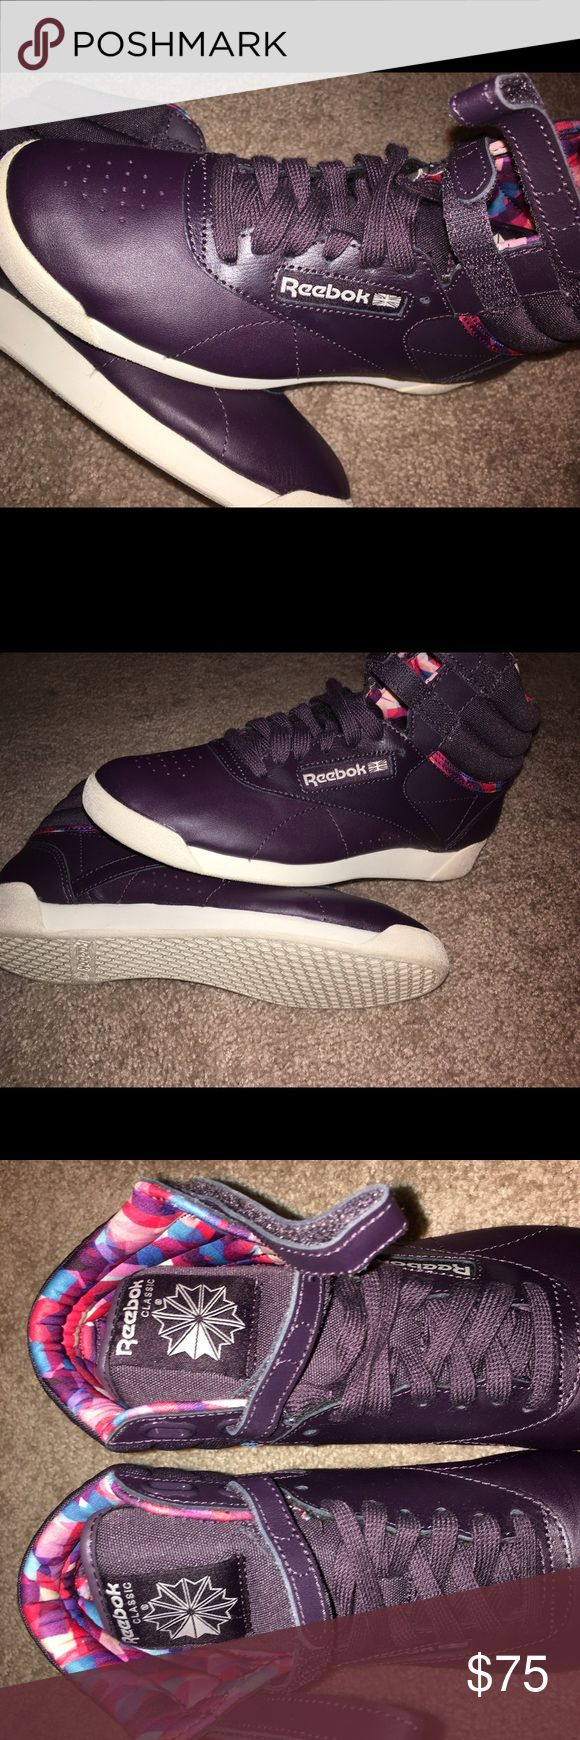 HTF Reebok Retro Classic Freestyle Purple Sneakers Excellent Condition! Worn once. (I went overboard and purchase these sneakers in every color). Reebok Retro Classic Freestyle Geo Graphic Purple High Top Sneakers. Size 7. Sneakers look brand new. Very comfortable. Graphic design on each shoe as seen in pictures. Very rare and Hard to Find Sneaker. #jordan #nike #kobe #kd #classic #curry #underarmour #lebron #sneakers #addidas #newbalance #athletic #fitness #michaelkors #lv #fashionnova…